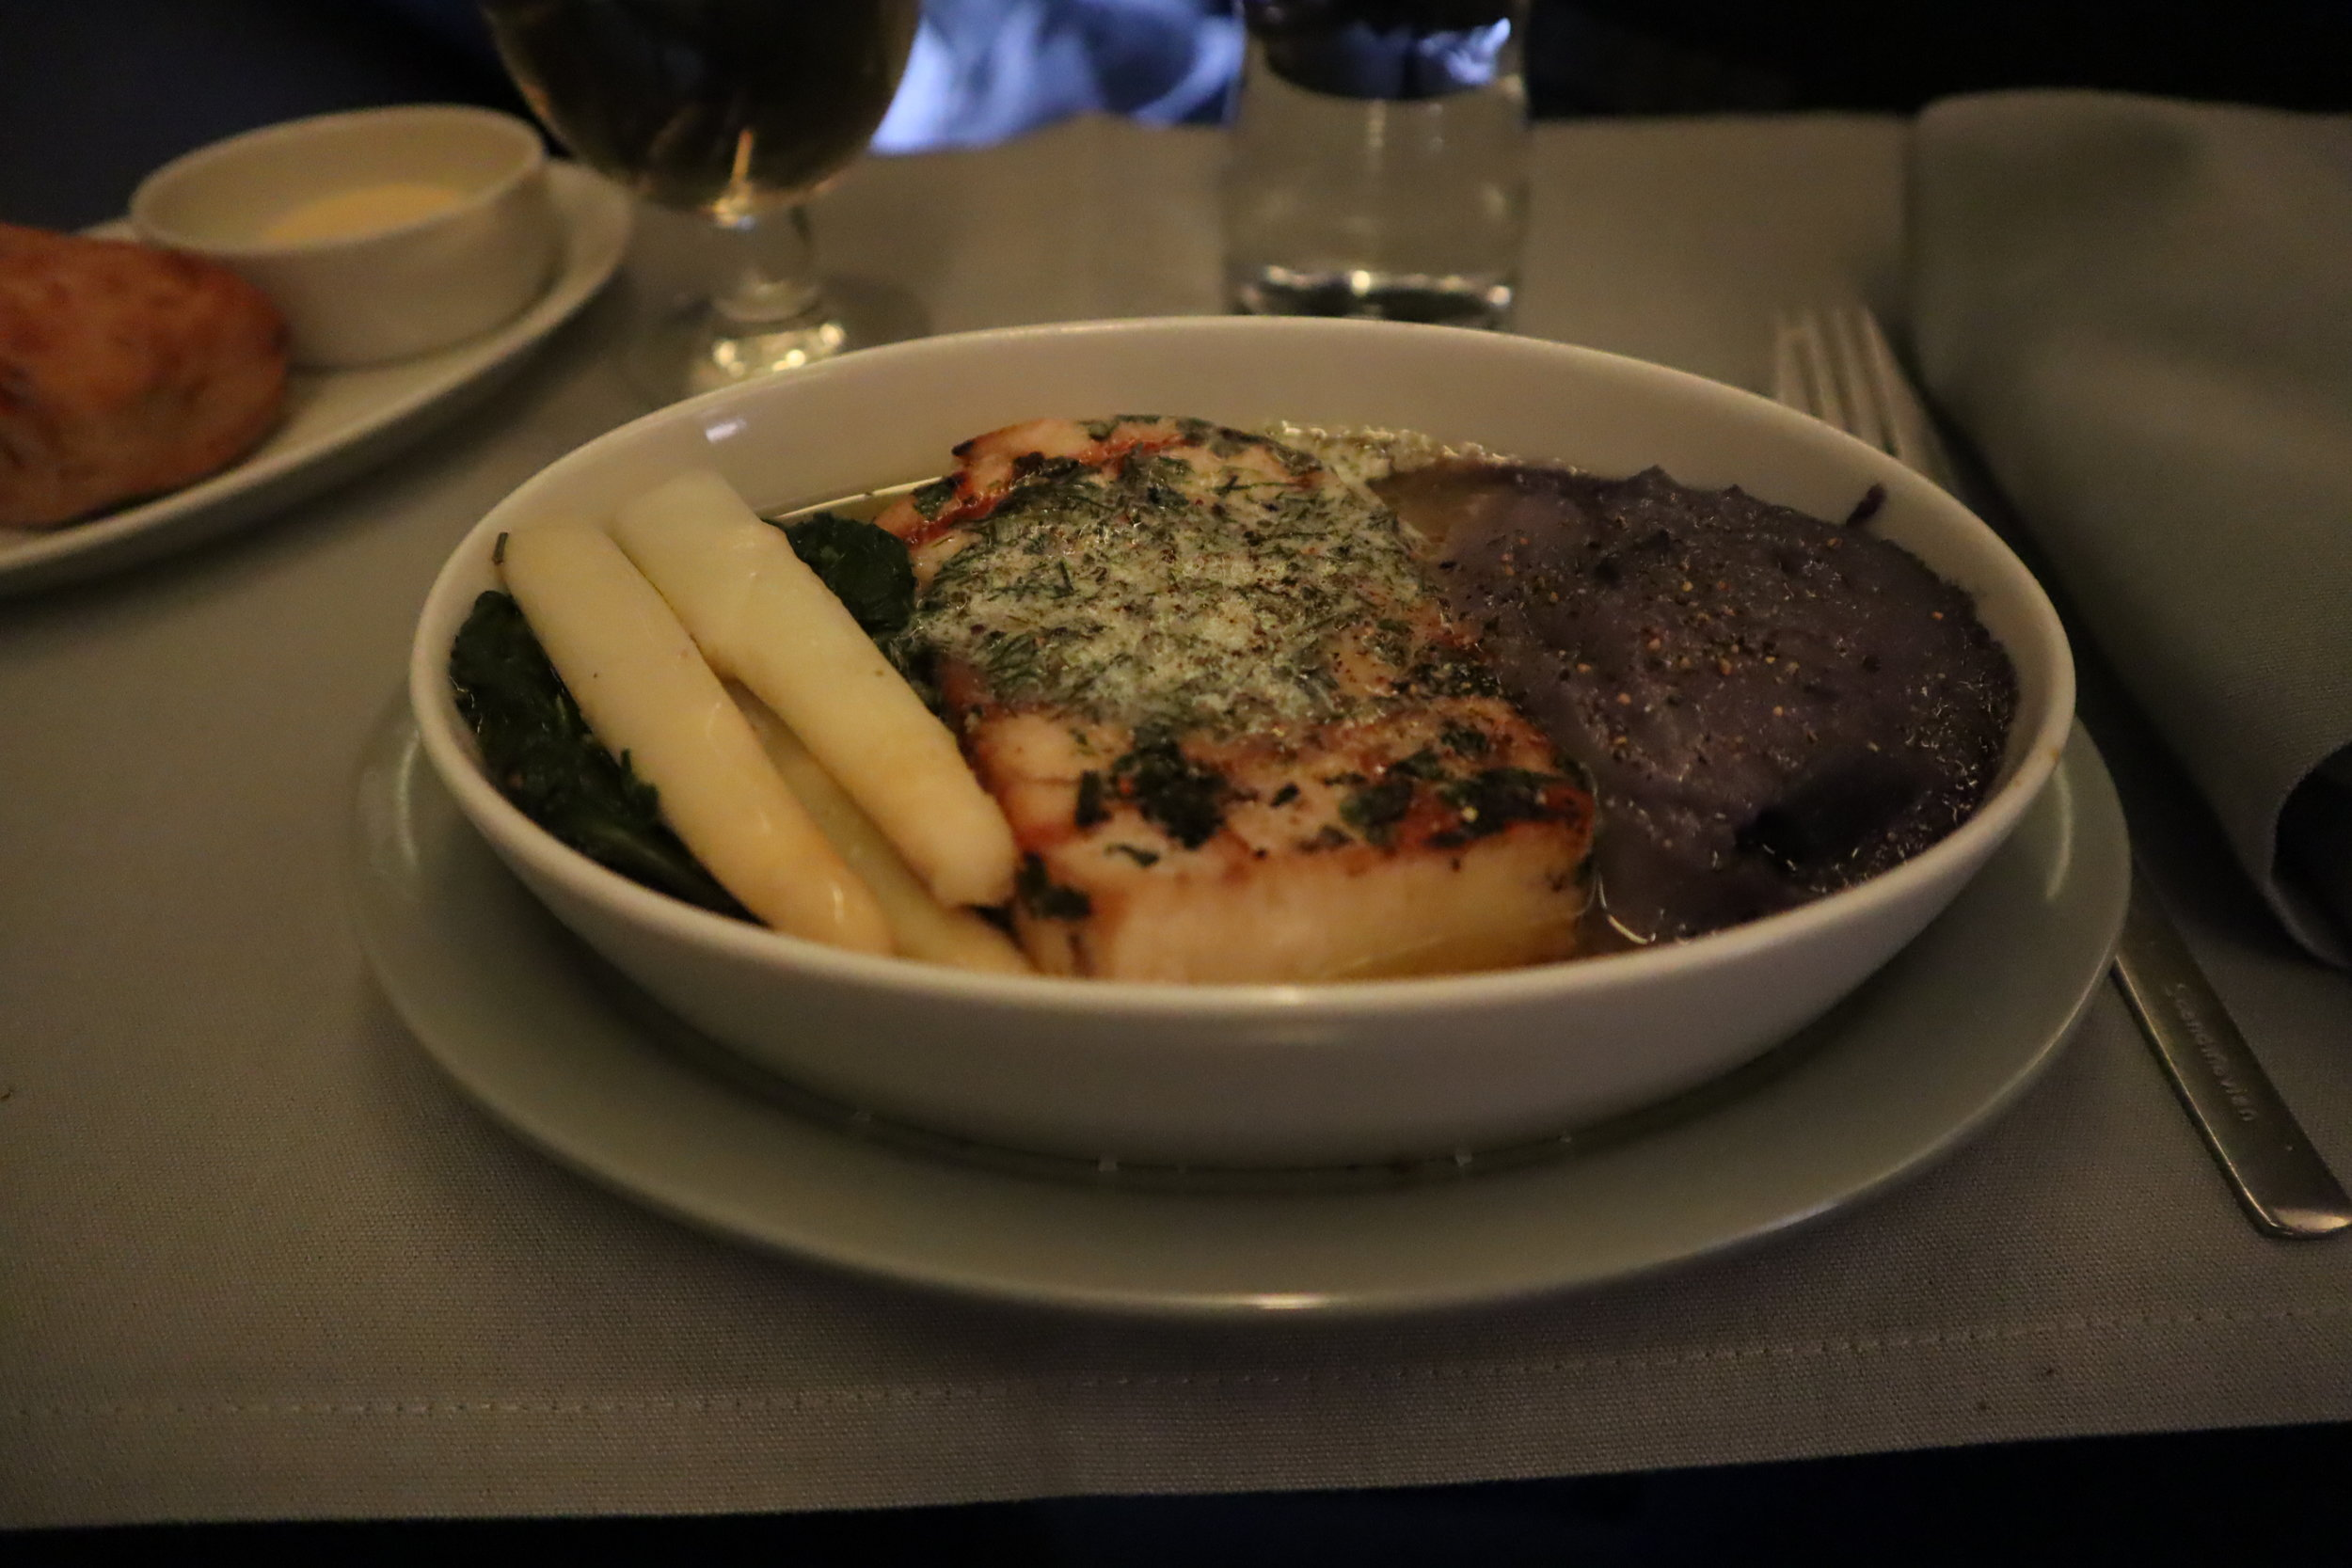 SAS business class – Grilled swordfish with purple mashed potato